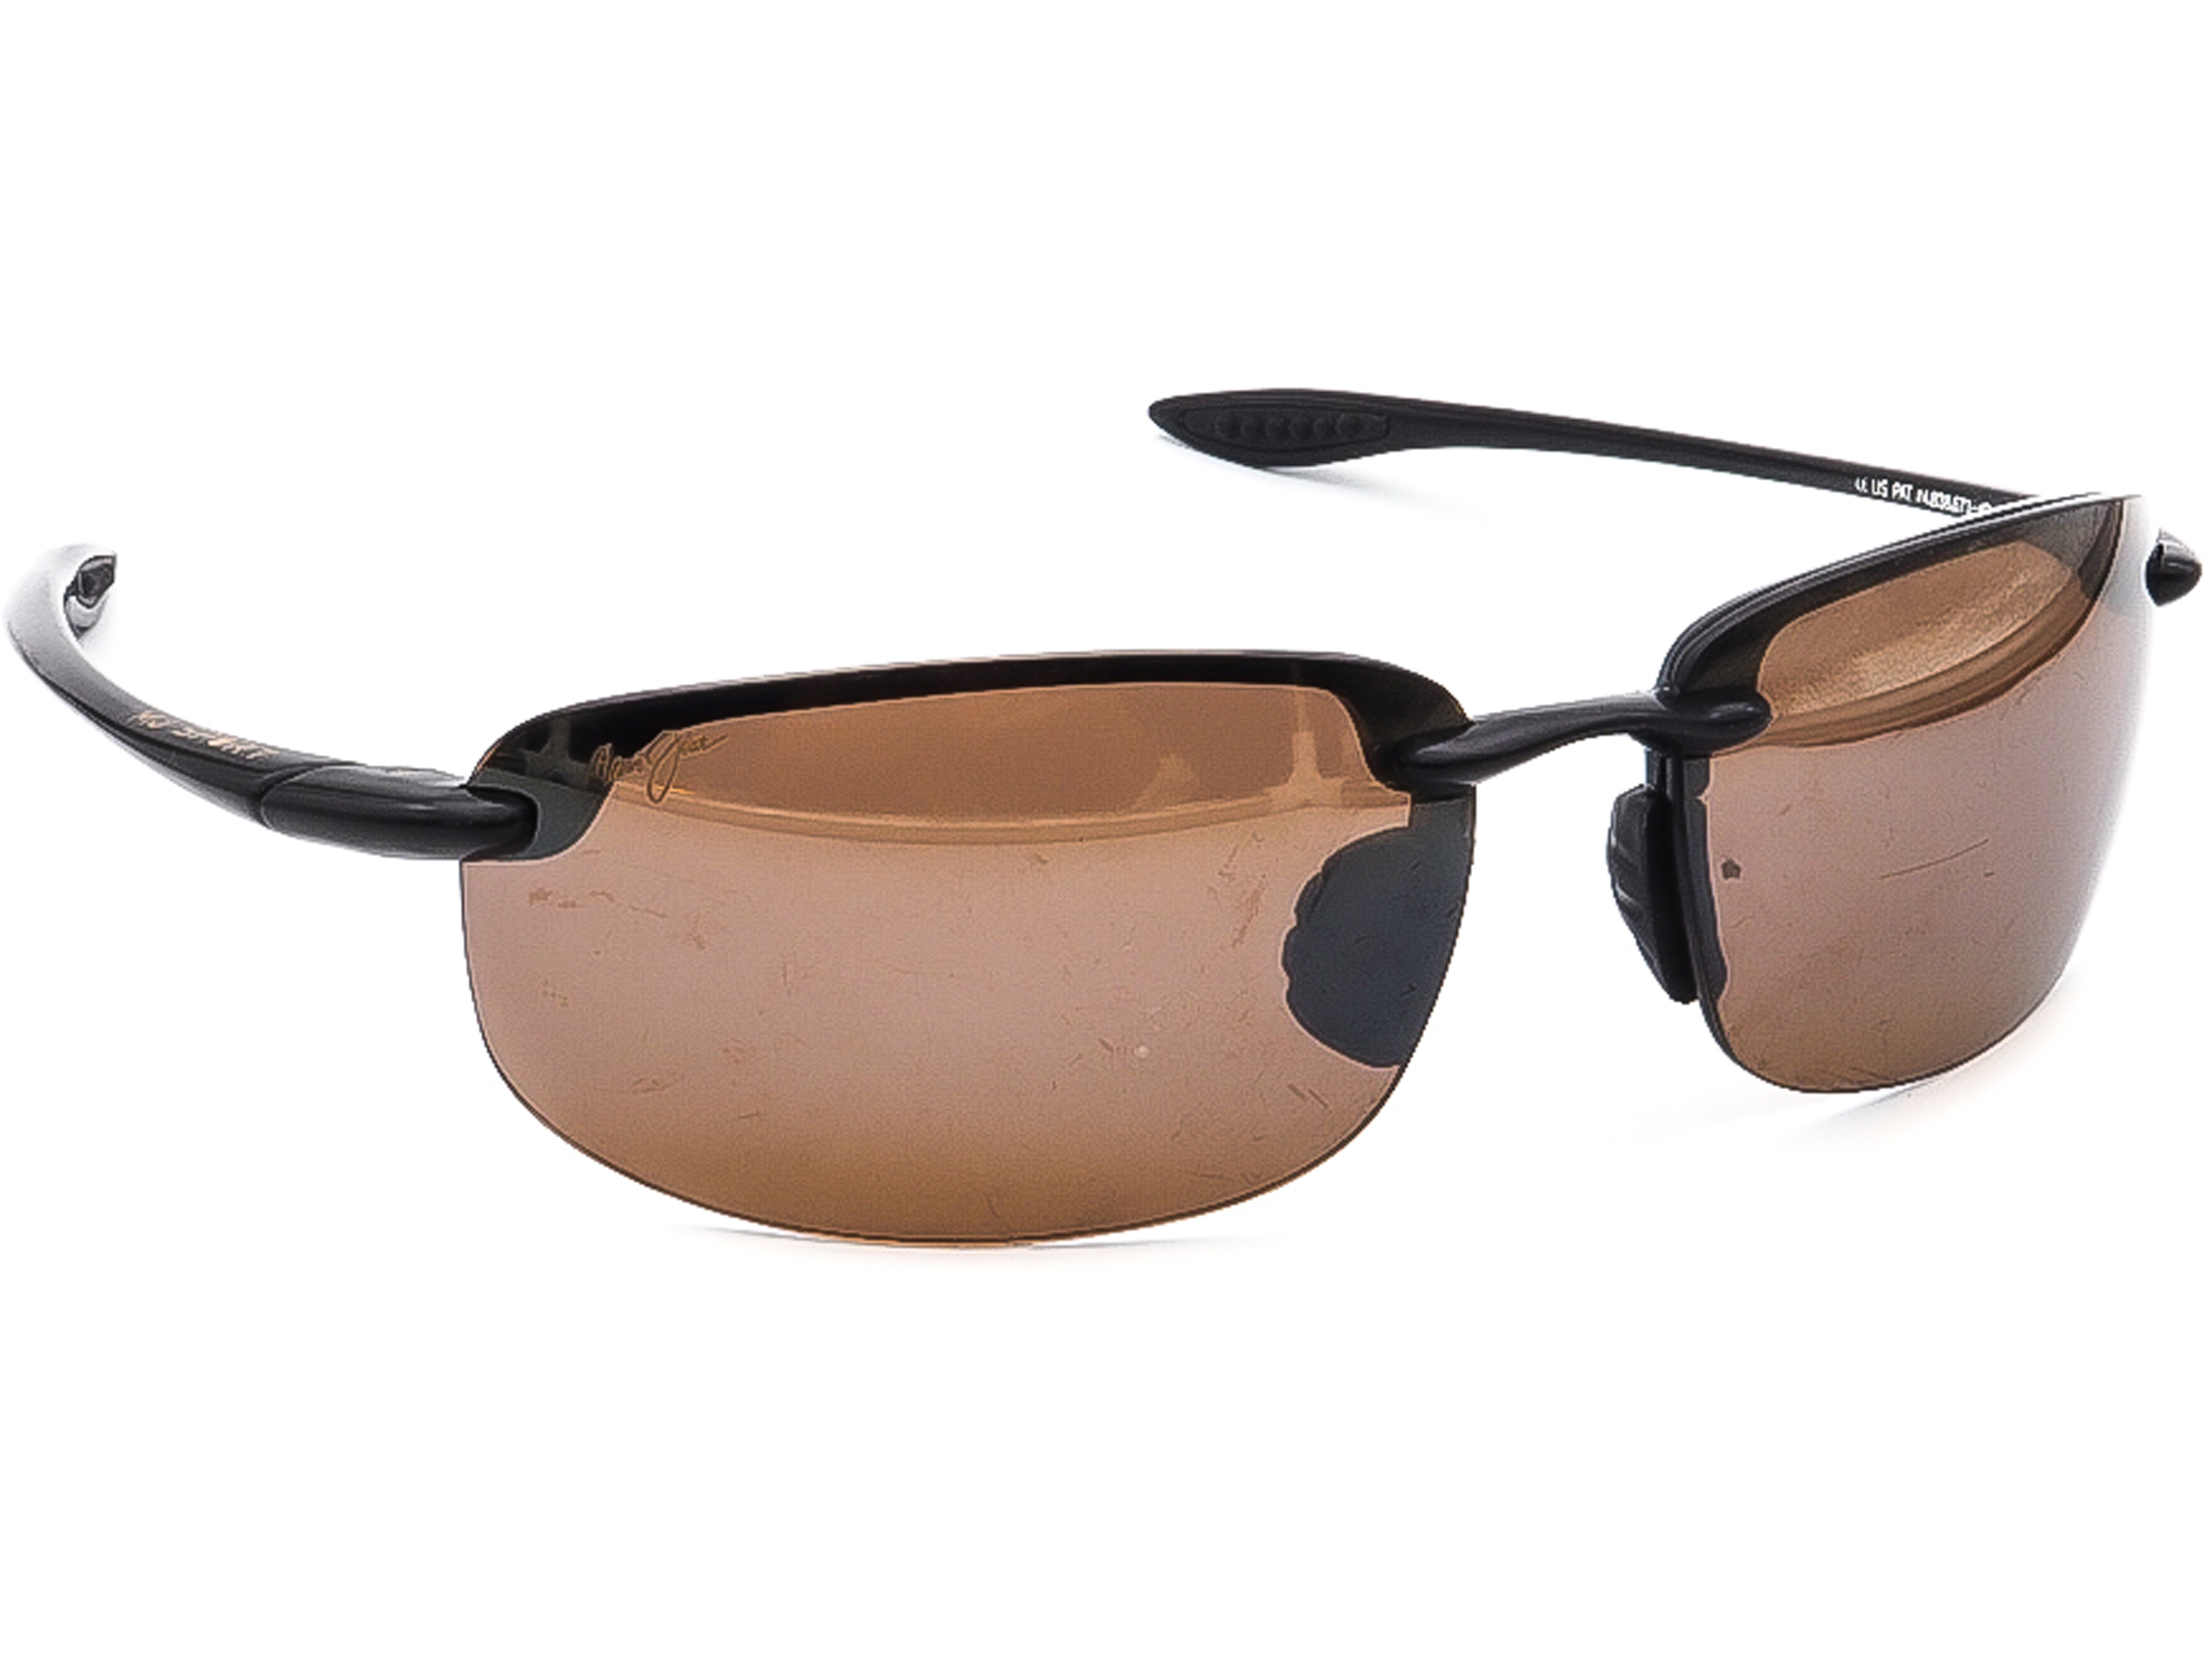 Maui Jim MJ-407-02 Sunglasses Frame Only